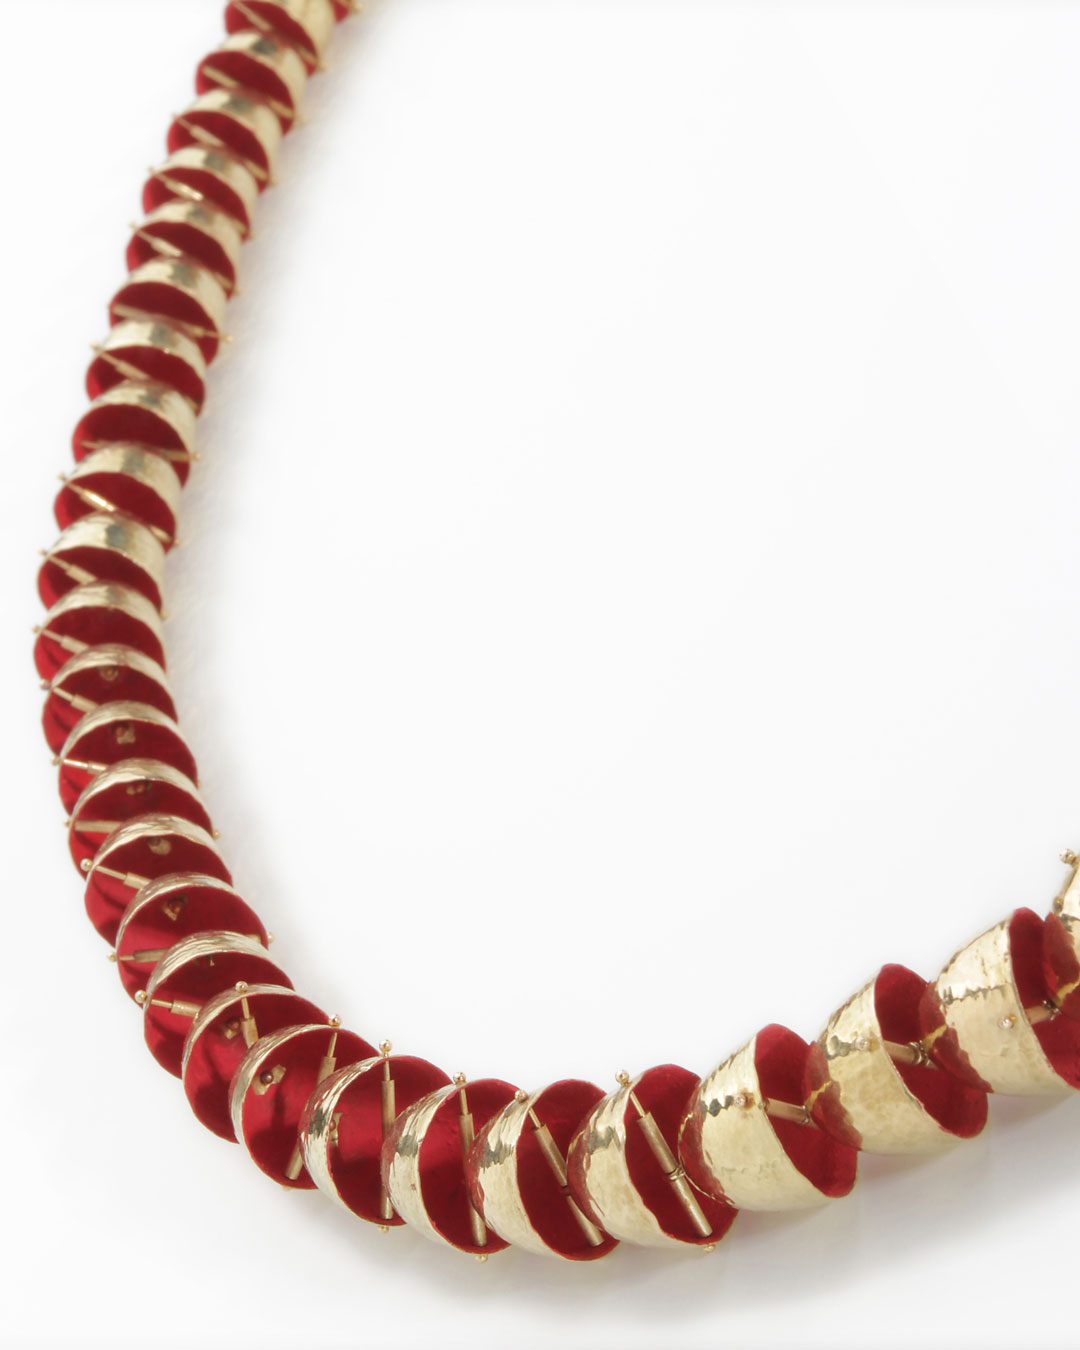 Piergiuliano Reveane, untitled, 2018, necklace; gold, enamel, ø 895 x 14 mm, price on request (image 1/3)